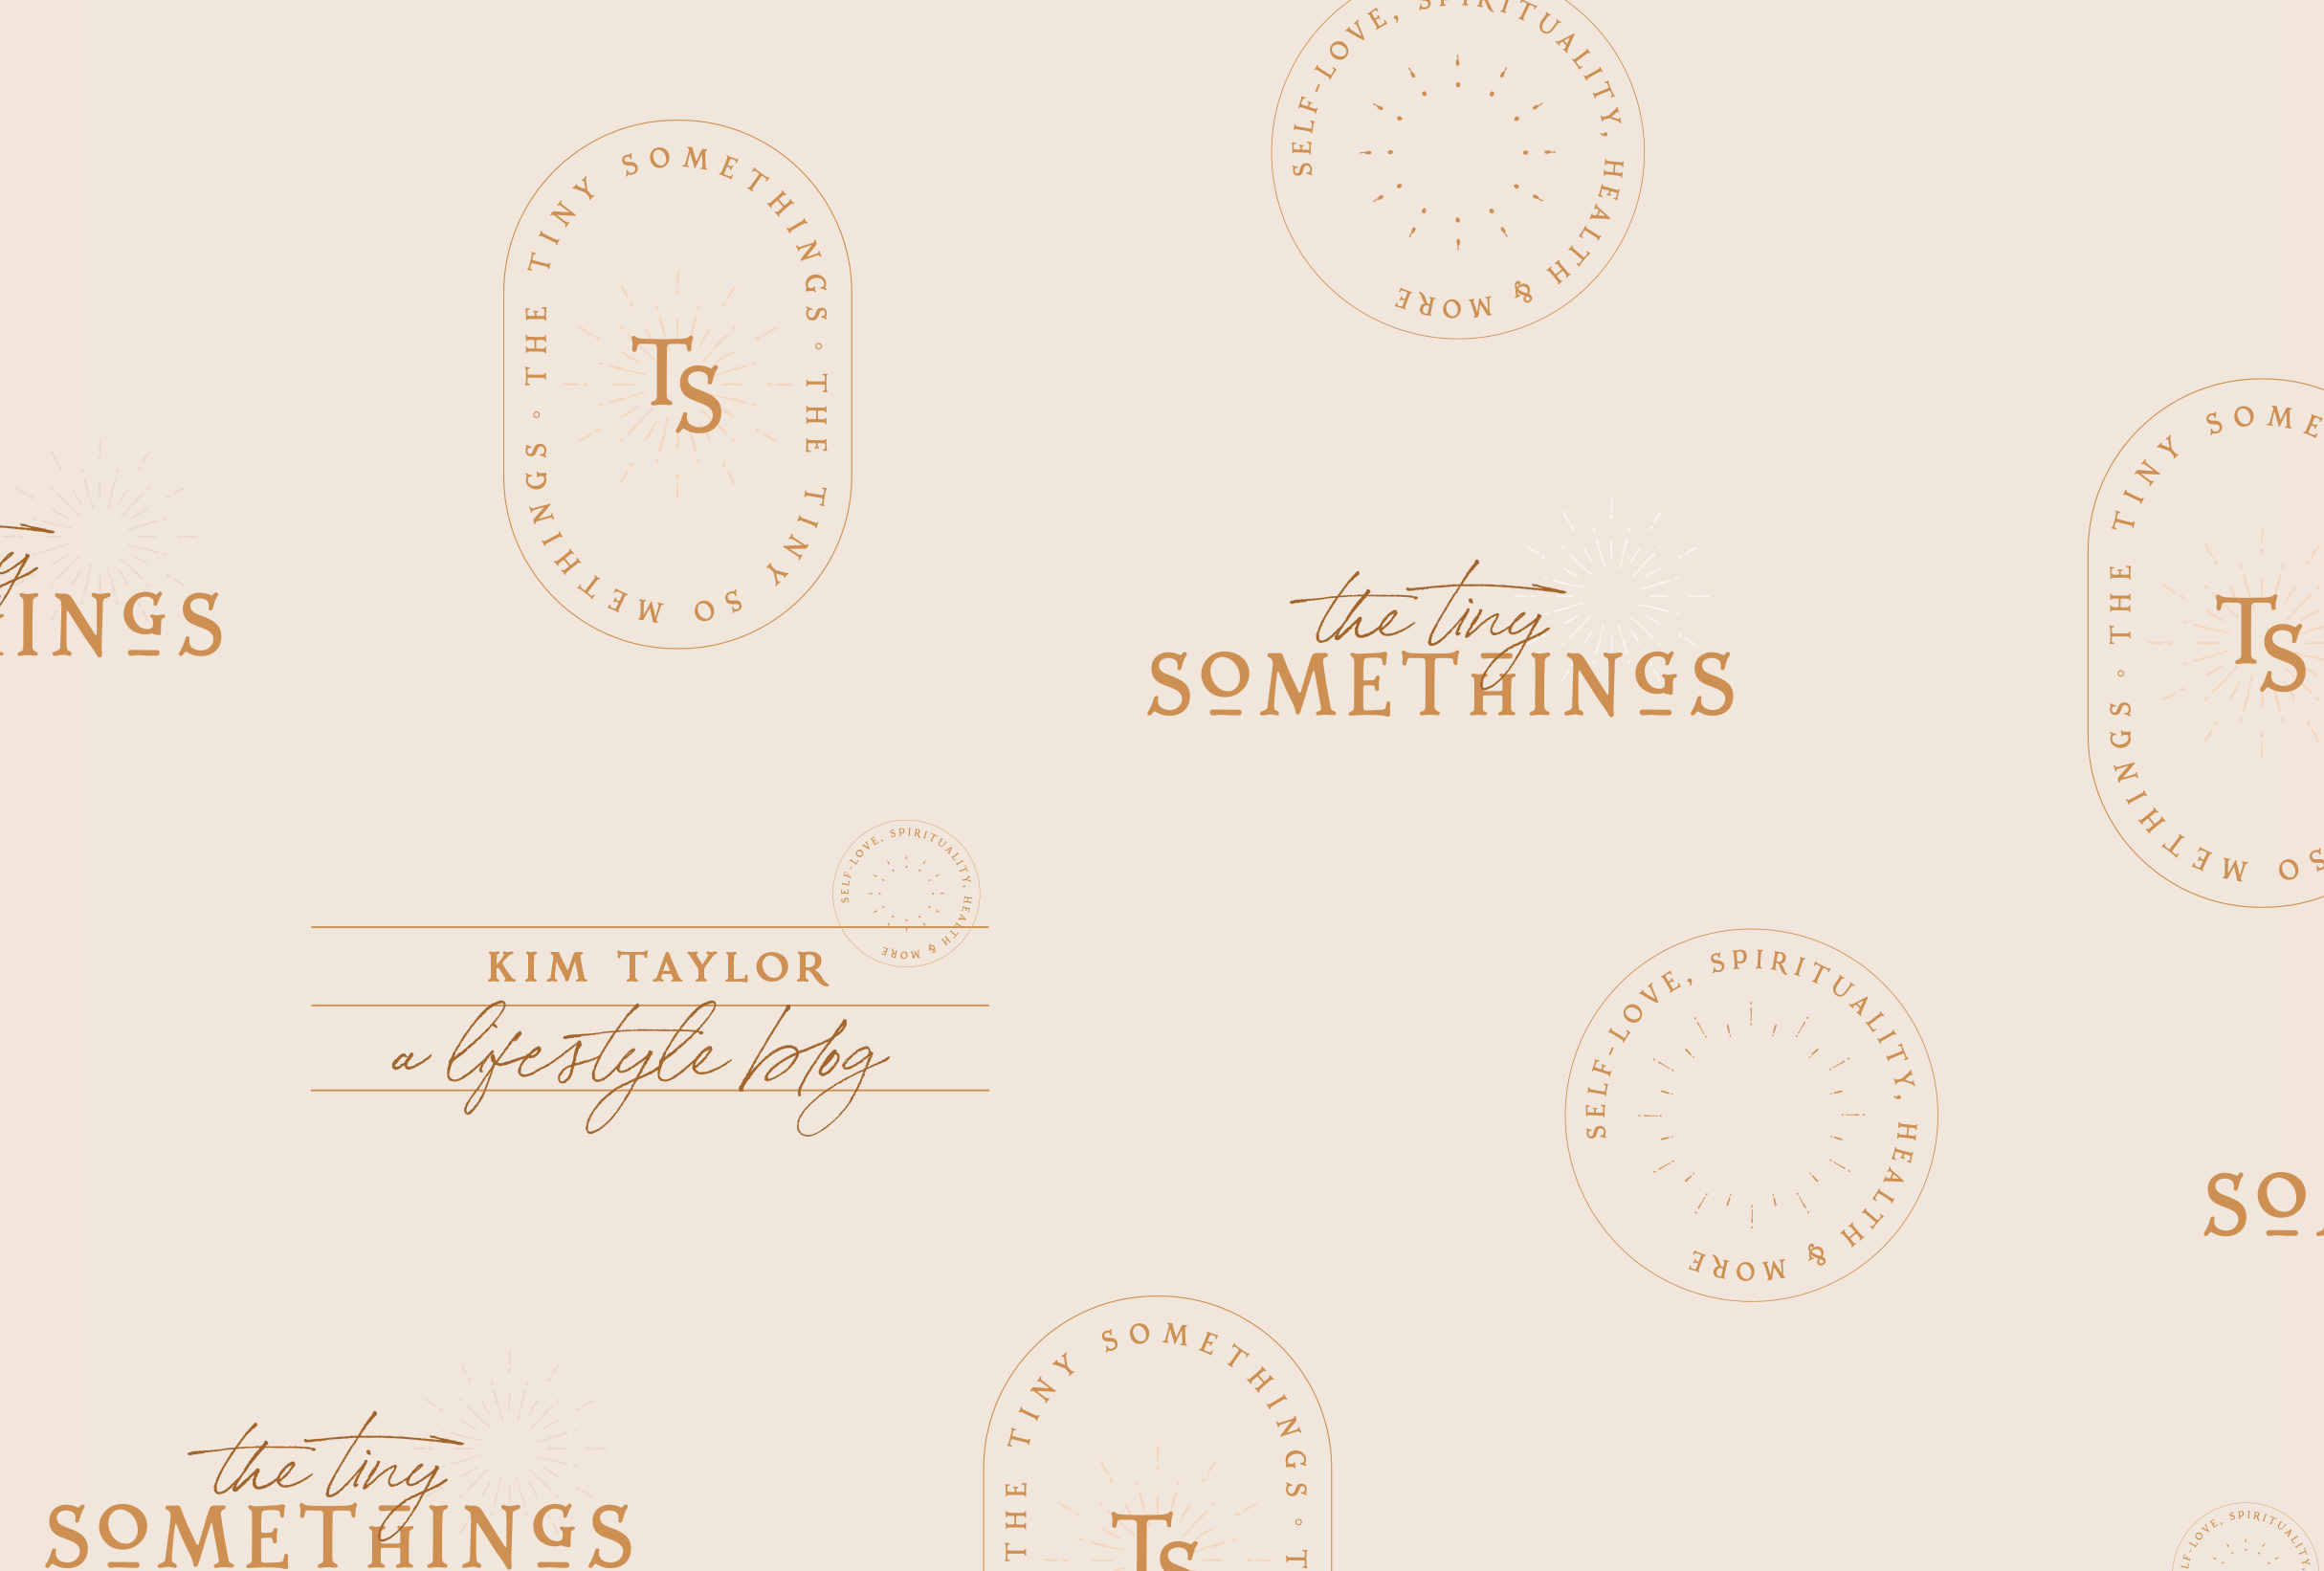 Brand pattern for The Tiny Somethings, a lifestyle blog that shares little snippets of advice and experiences on different areas of life including personal growth, self-love, spirituality, health & wellness, and more - designed by Wiltshire-based graphic designer, Kaye Huett